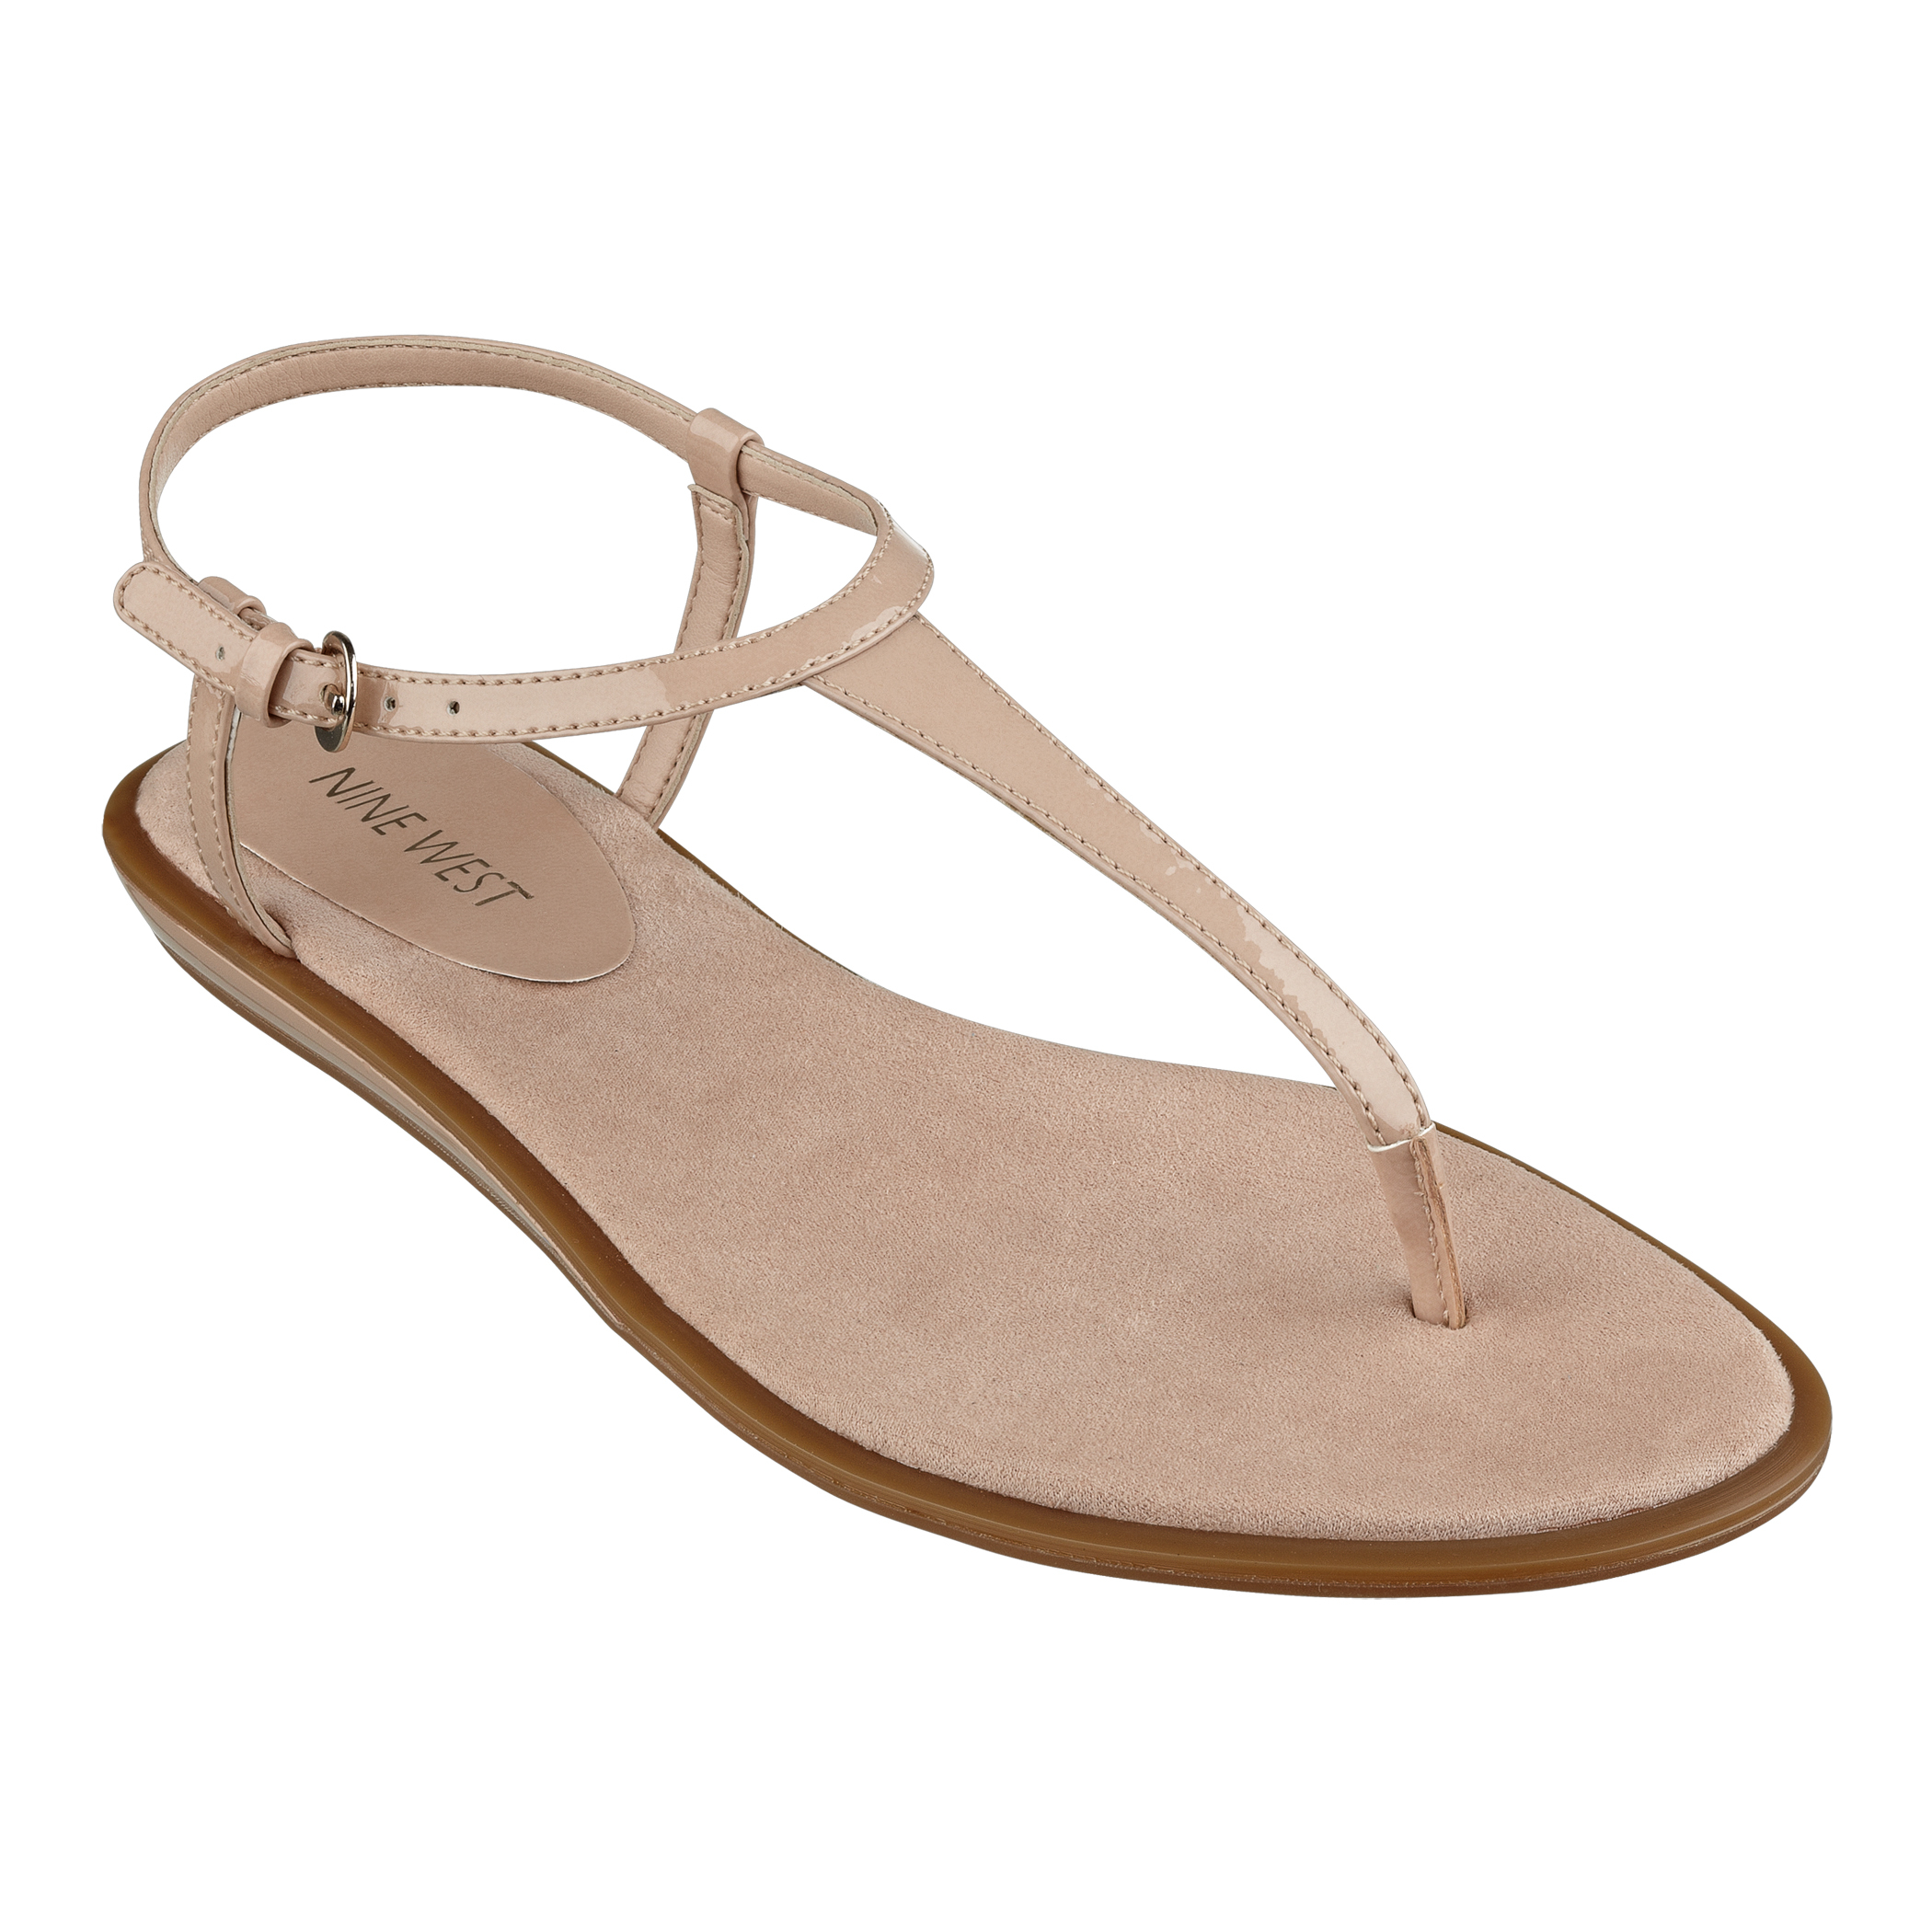 8e49646a1a56 Lyst - Nine West Venga Sandal in Natural